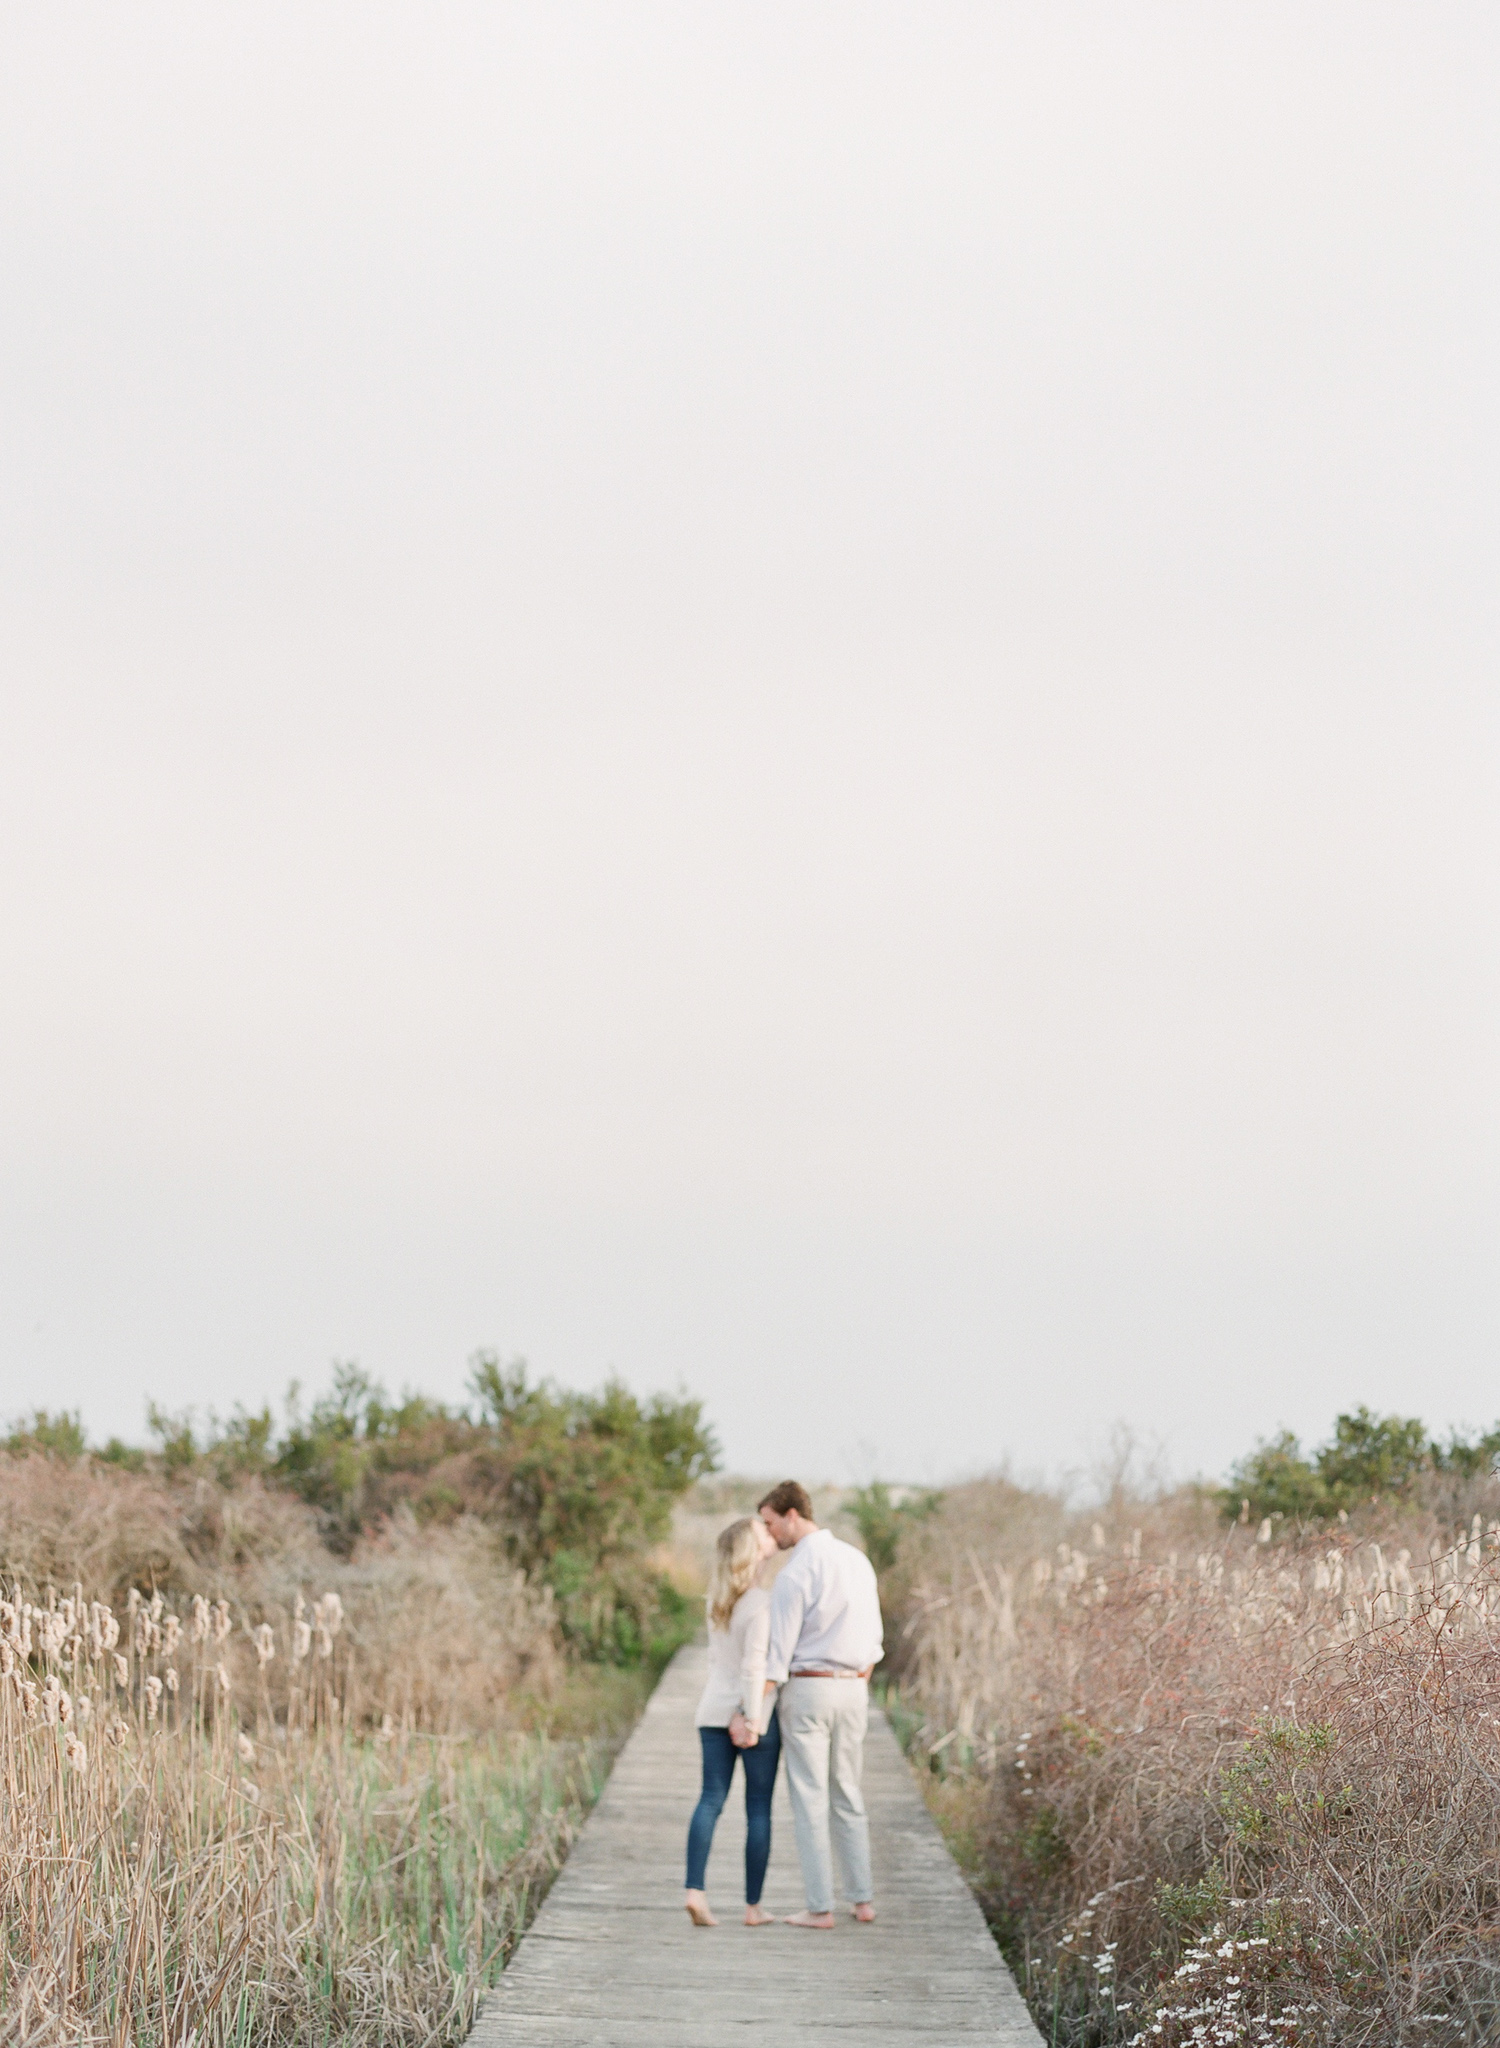 Charleston-Engagement-Session-Photos-87.jpg